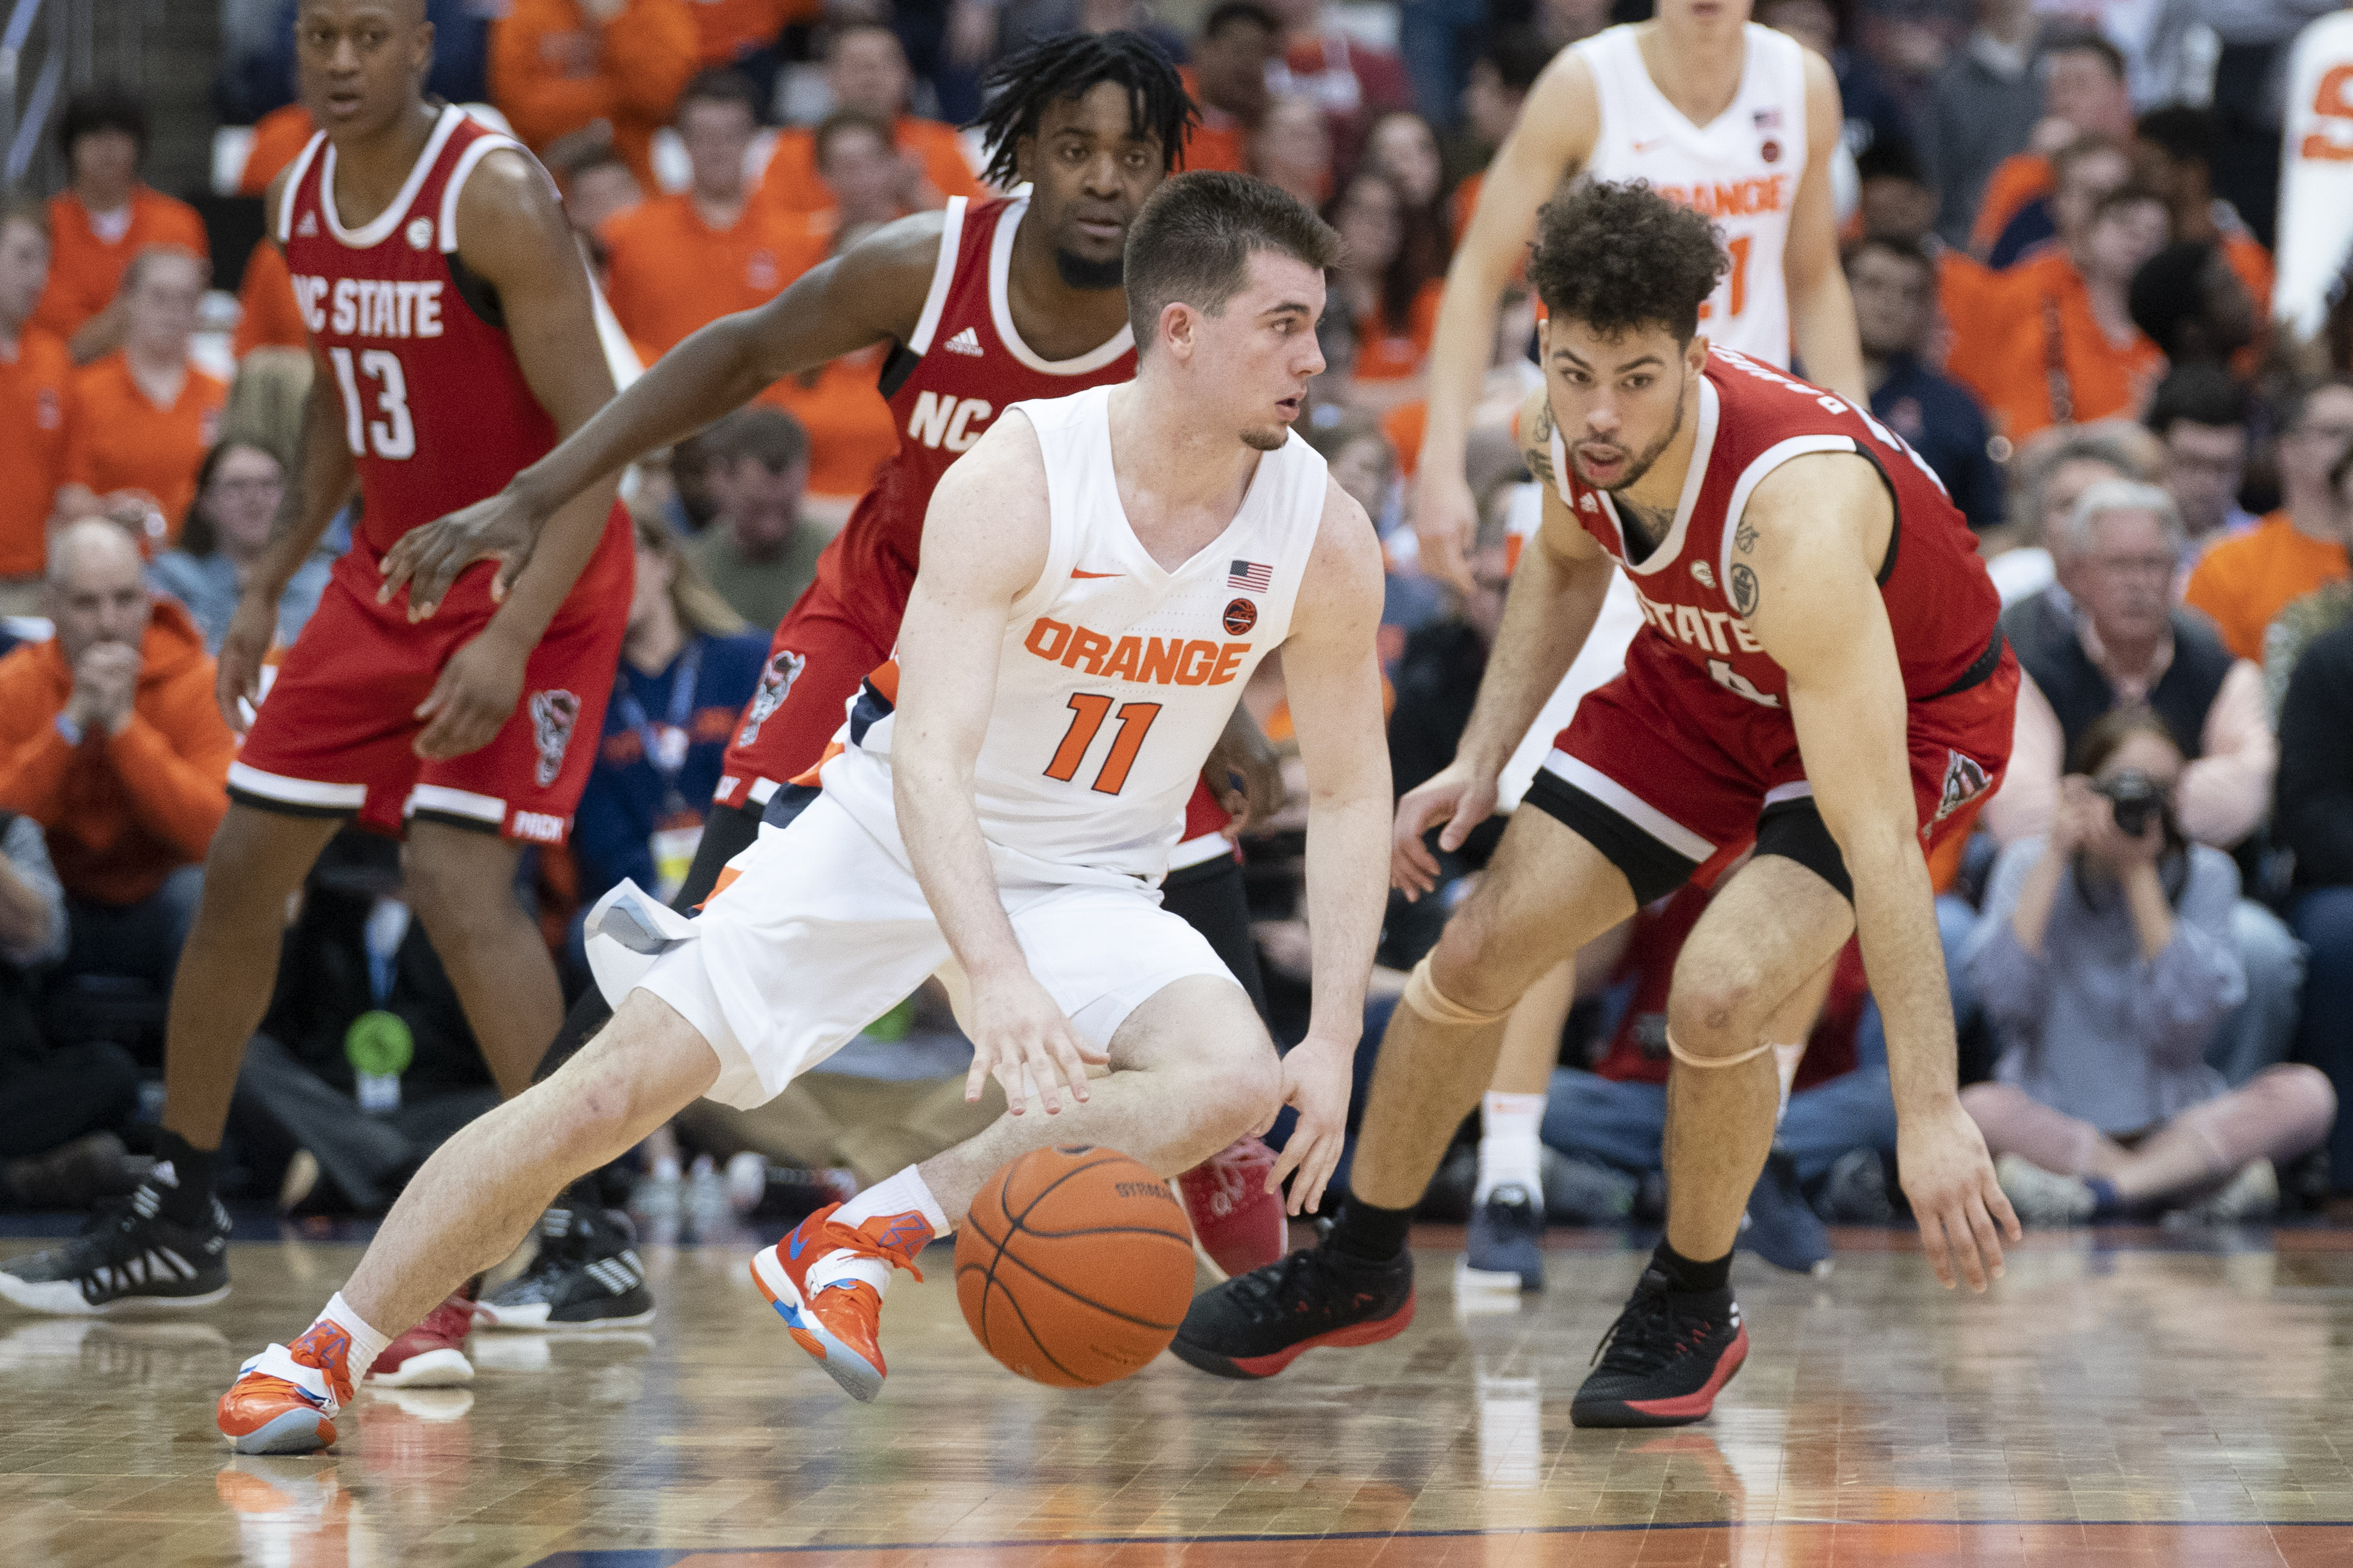 COLLEGE BASKETBALL: FEB 11 NC State at Syracuse